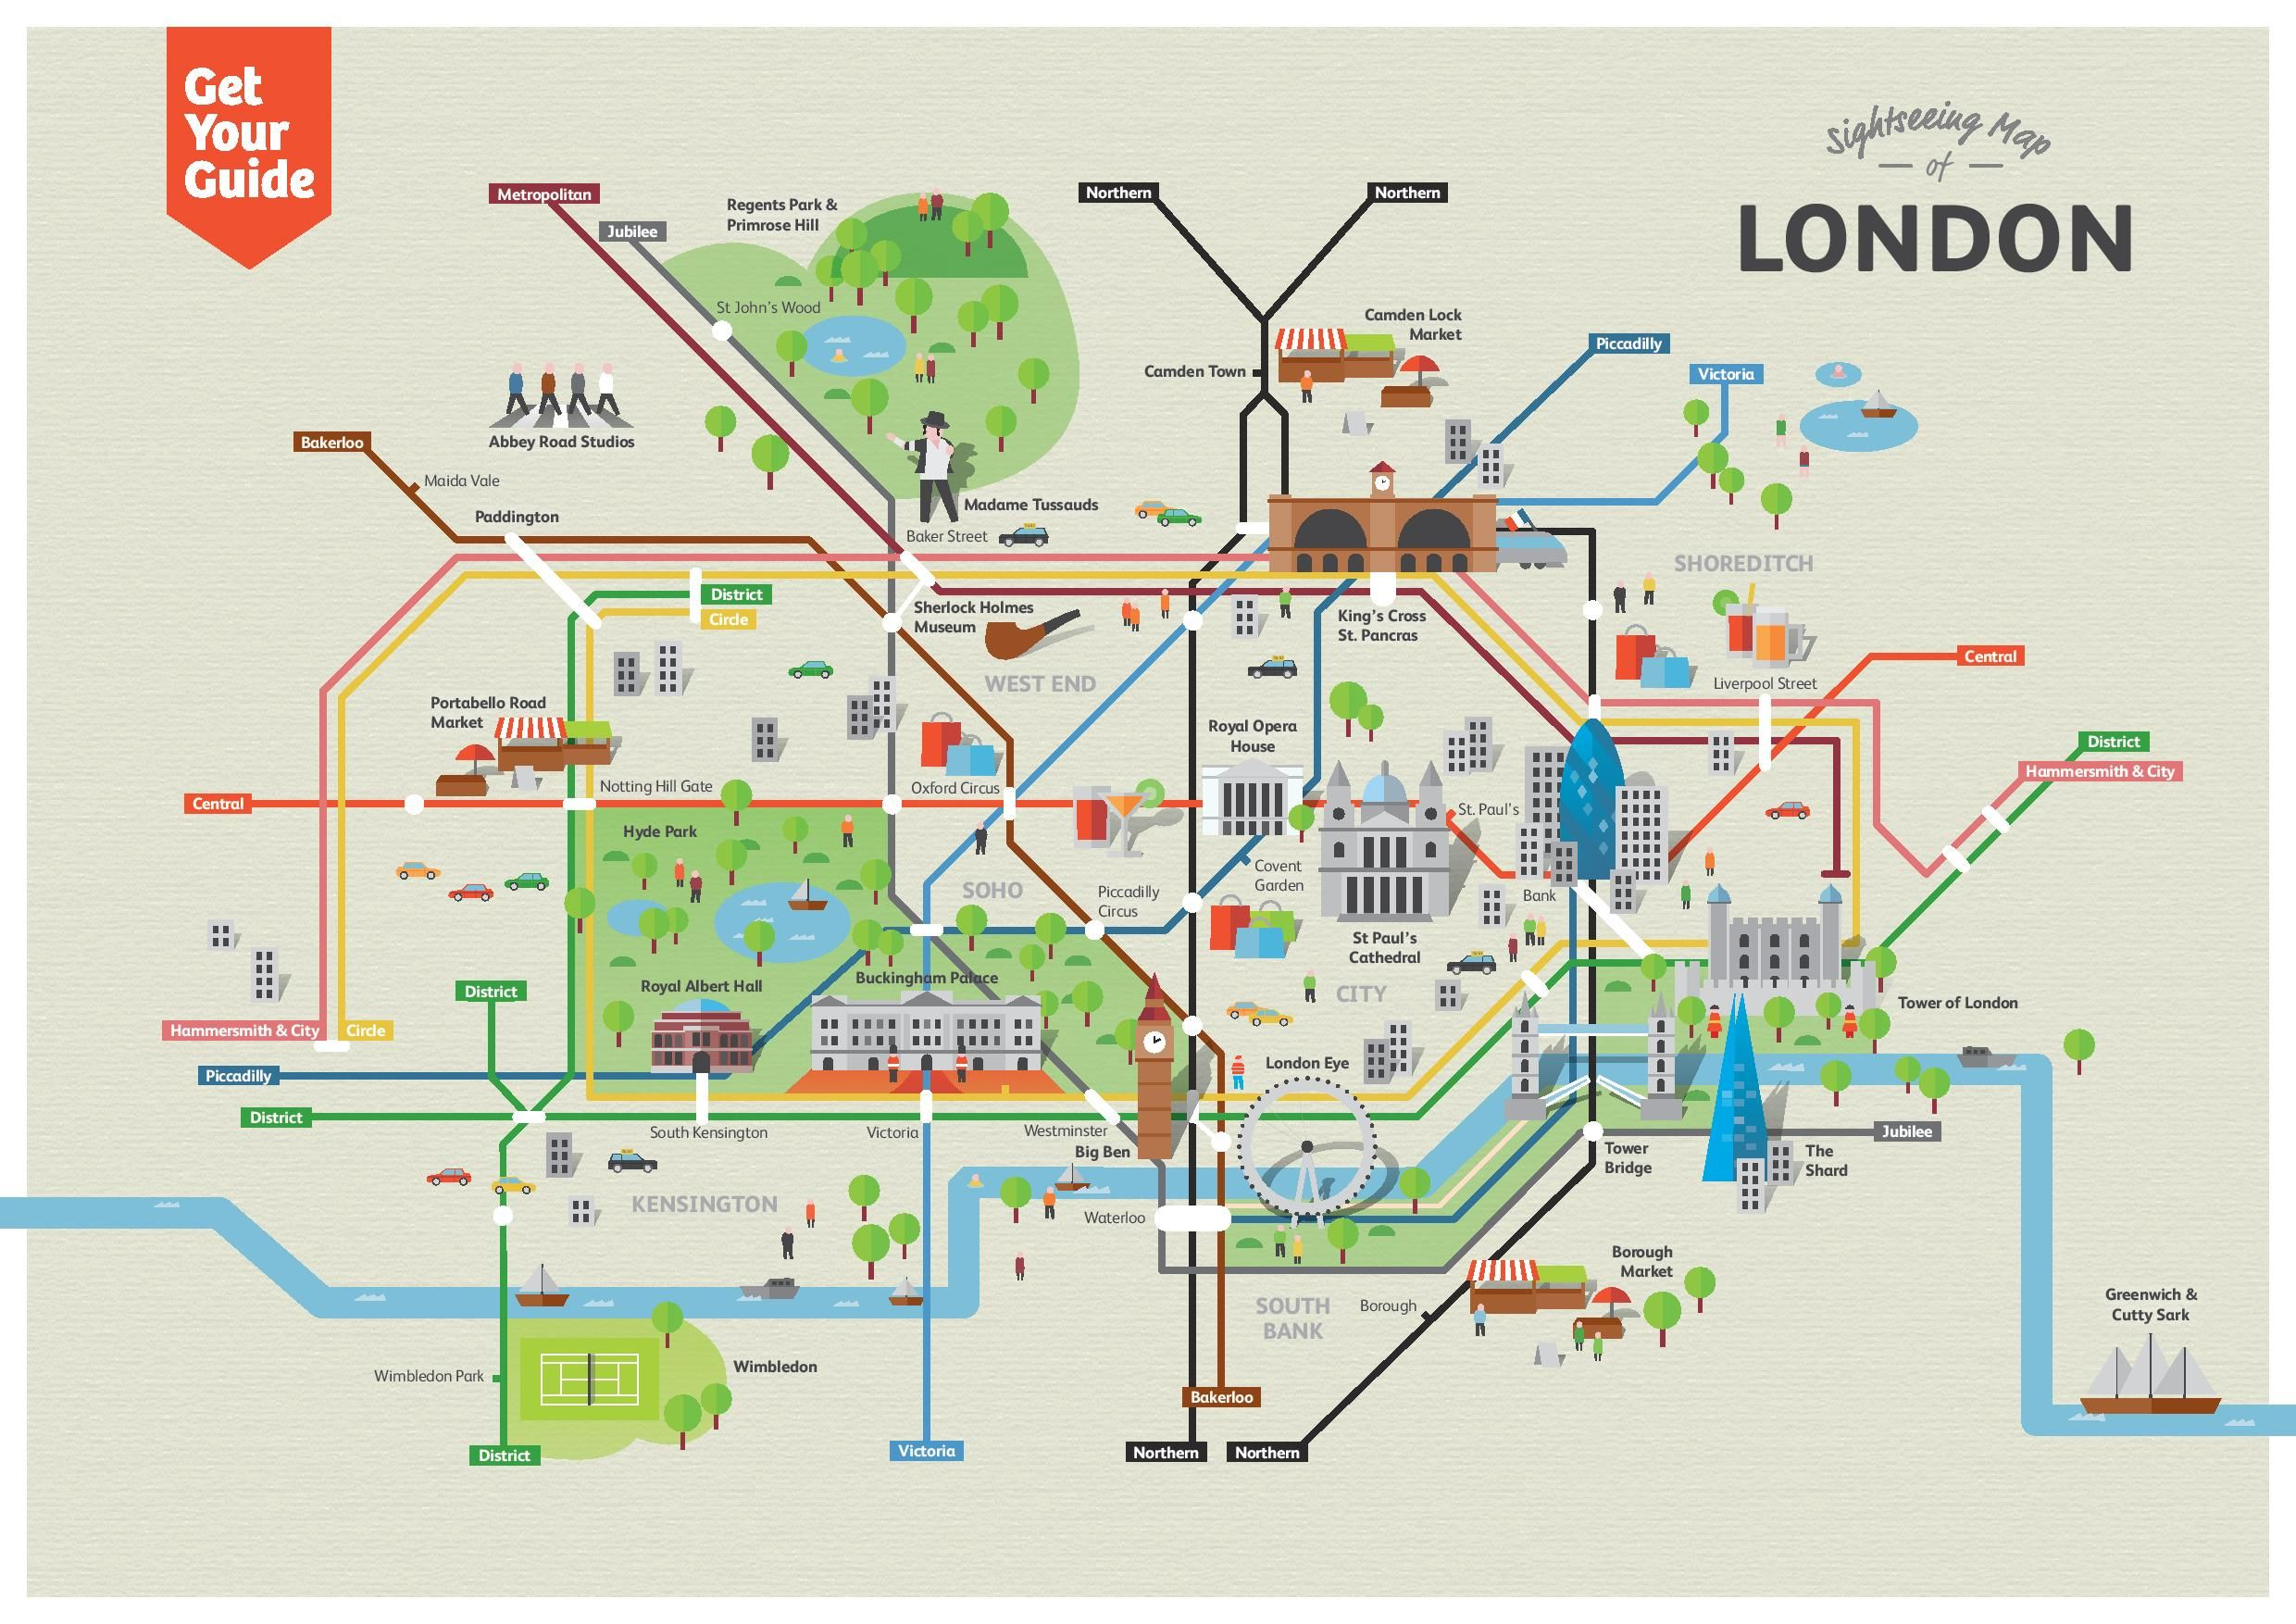 Printable Tourist Map Of London.Sightseeing Map Of London Attractions In 2019 London London